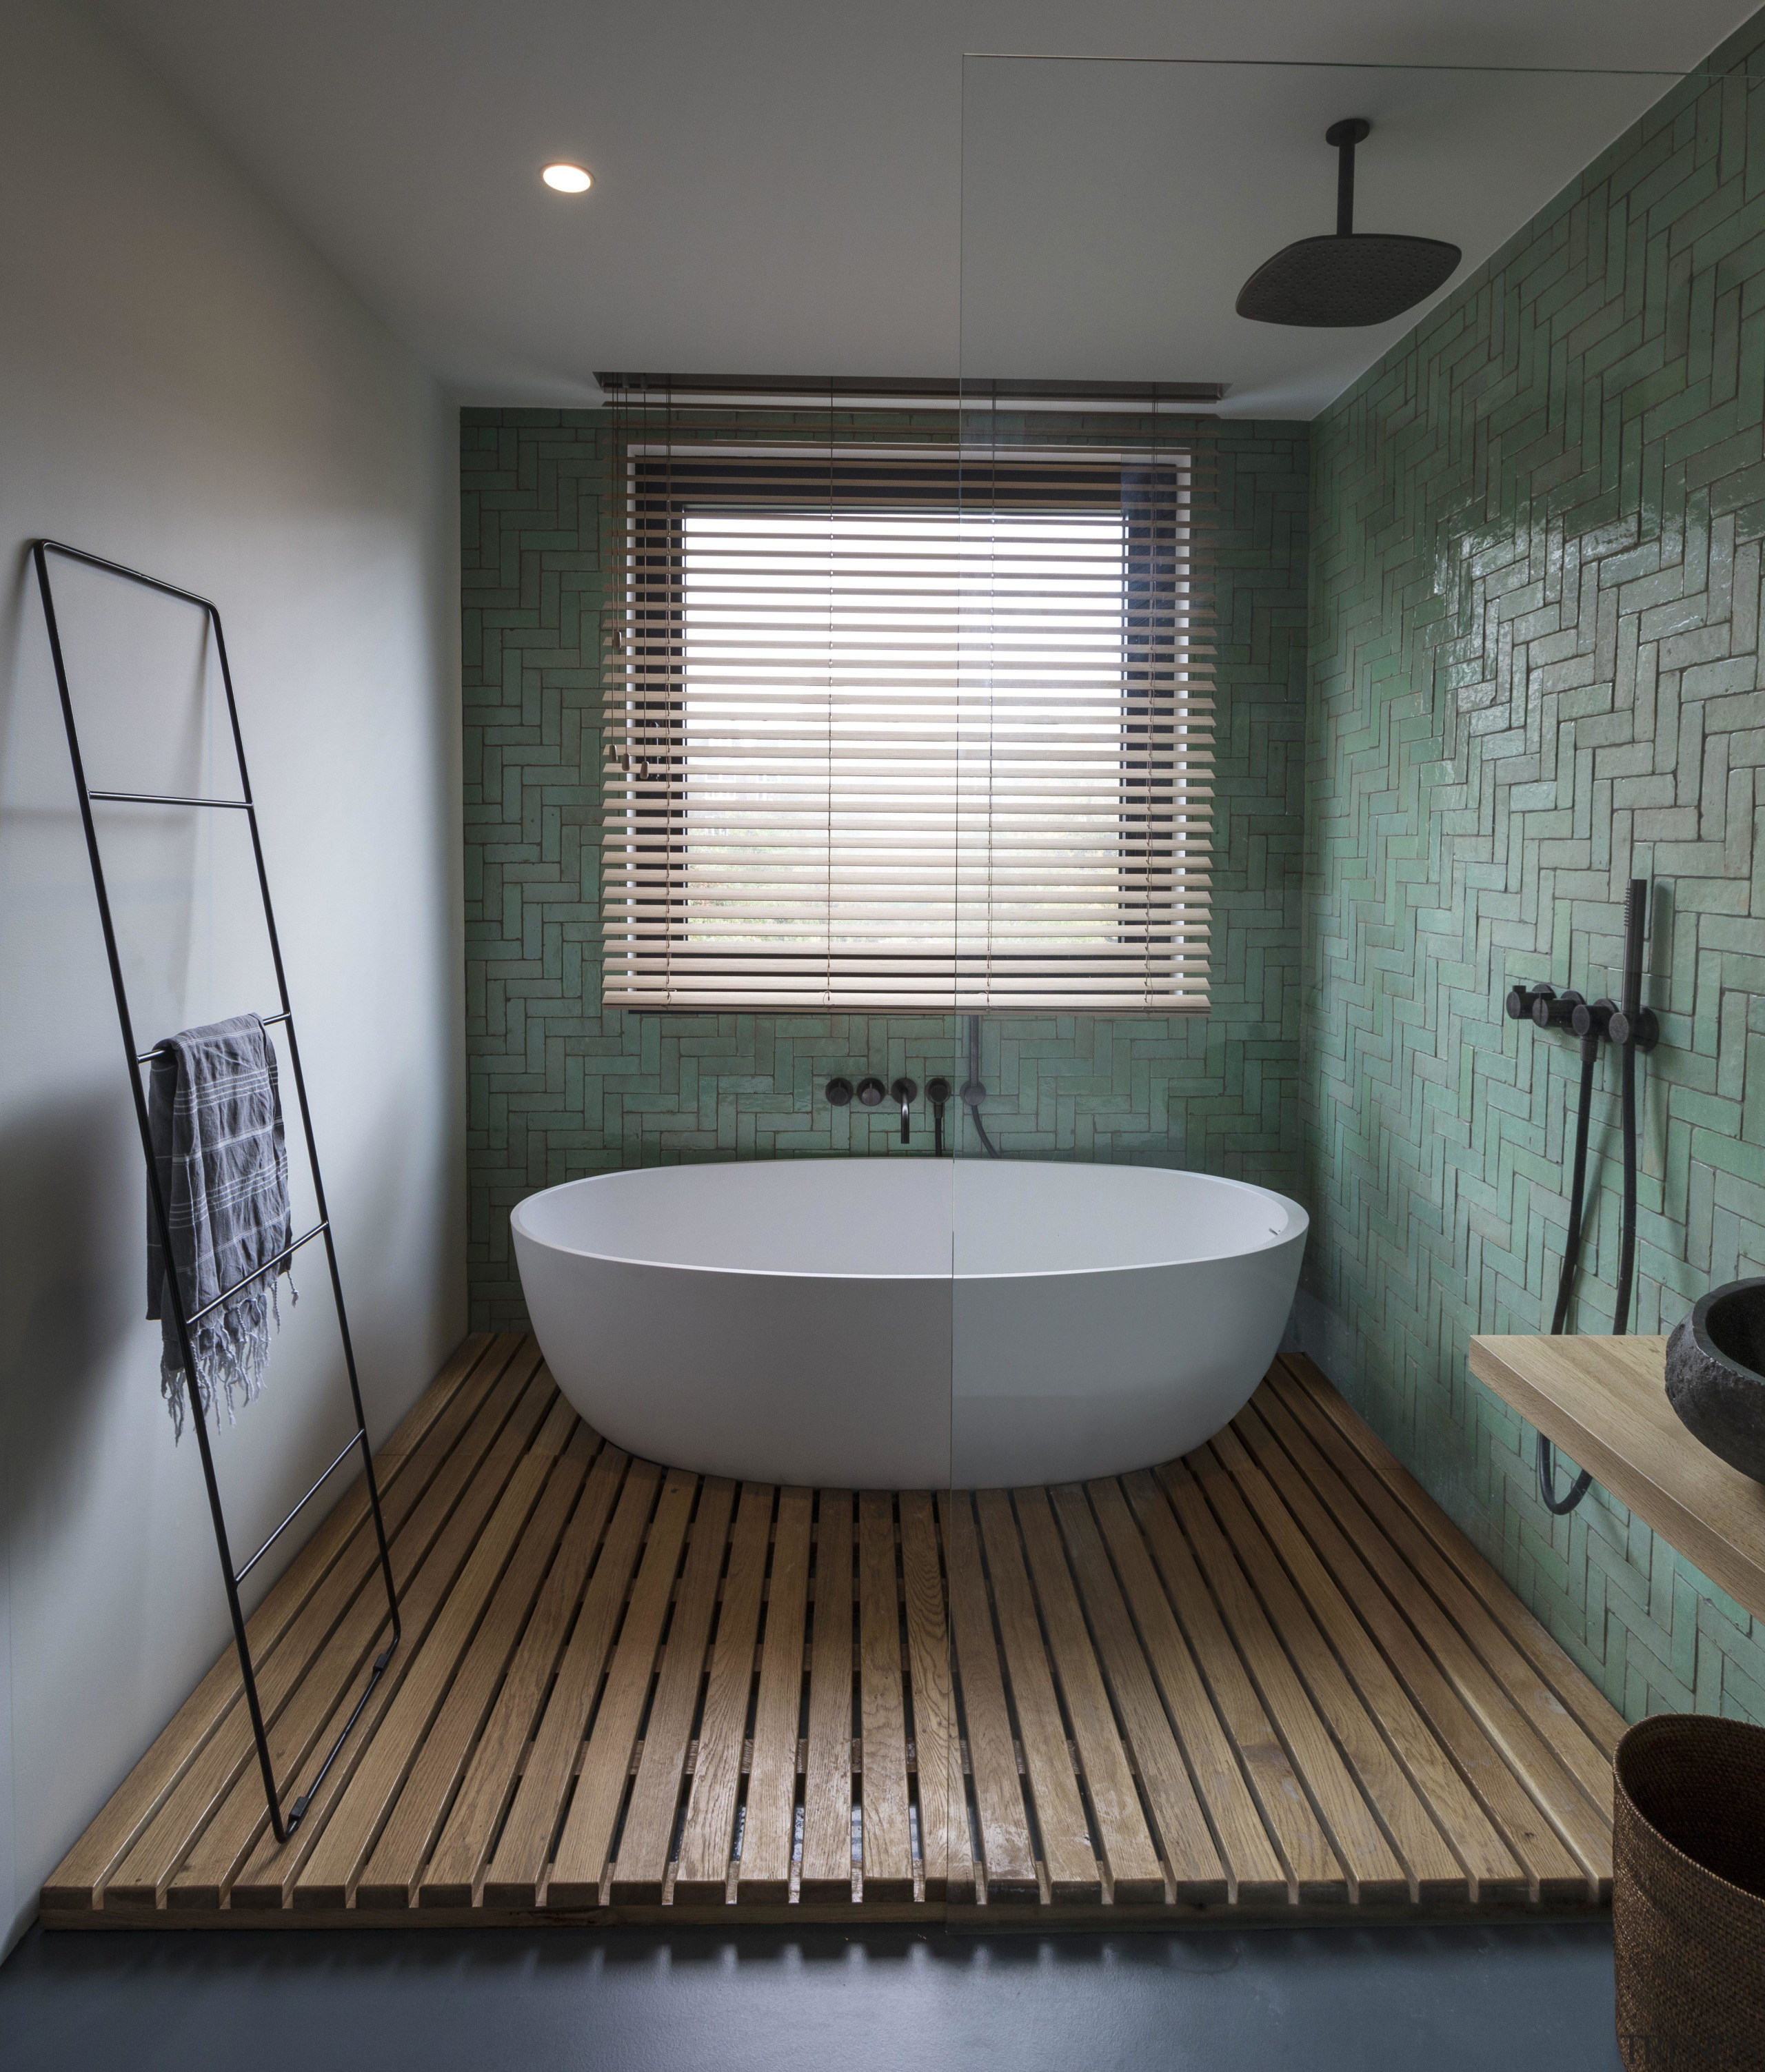 ​​​​​​​This bathroom's wet area containing the bath tub architecture, bathroom, bathtub, building, ceiling, daylighting, floor, flooring, furniture, hardwood, home, house, interior design, plumbing fixture, property, room, tile, wood flooring, gray, black